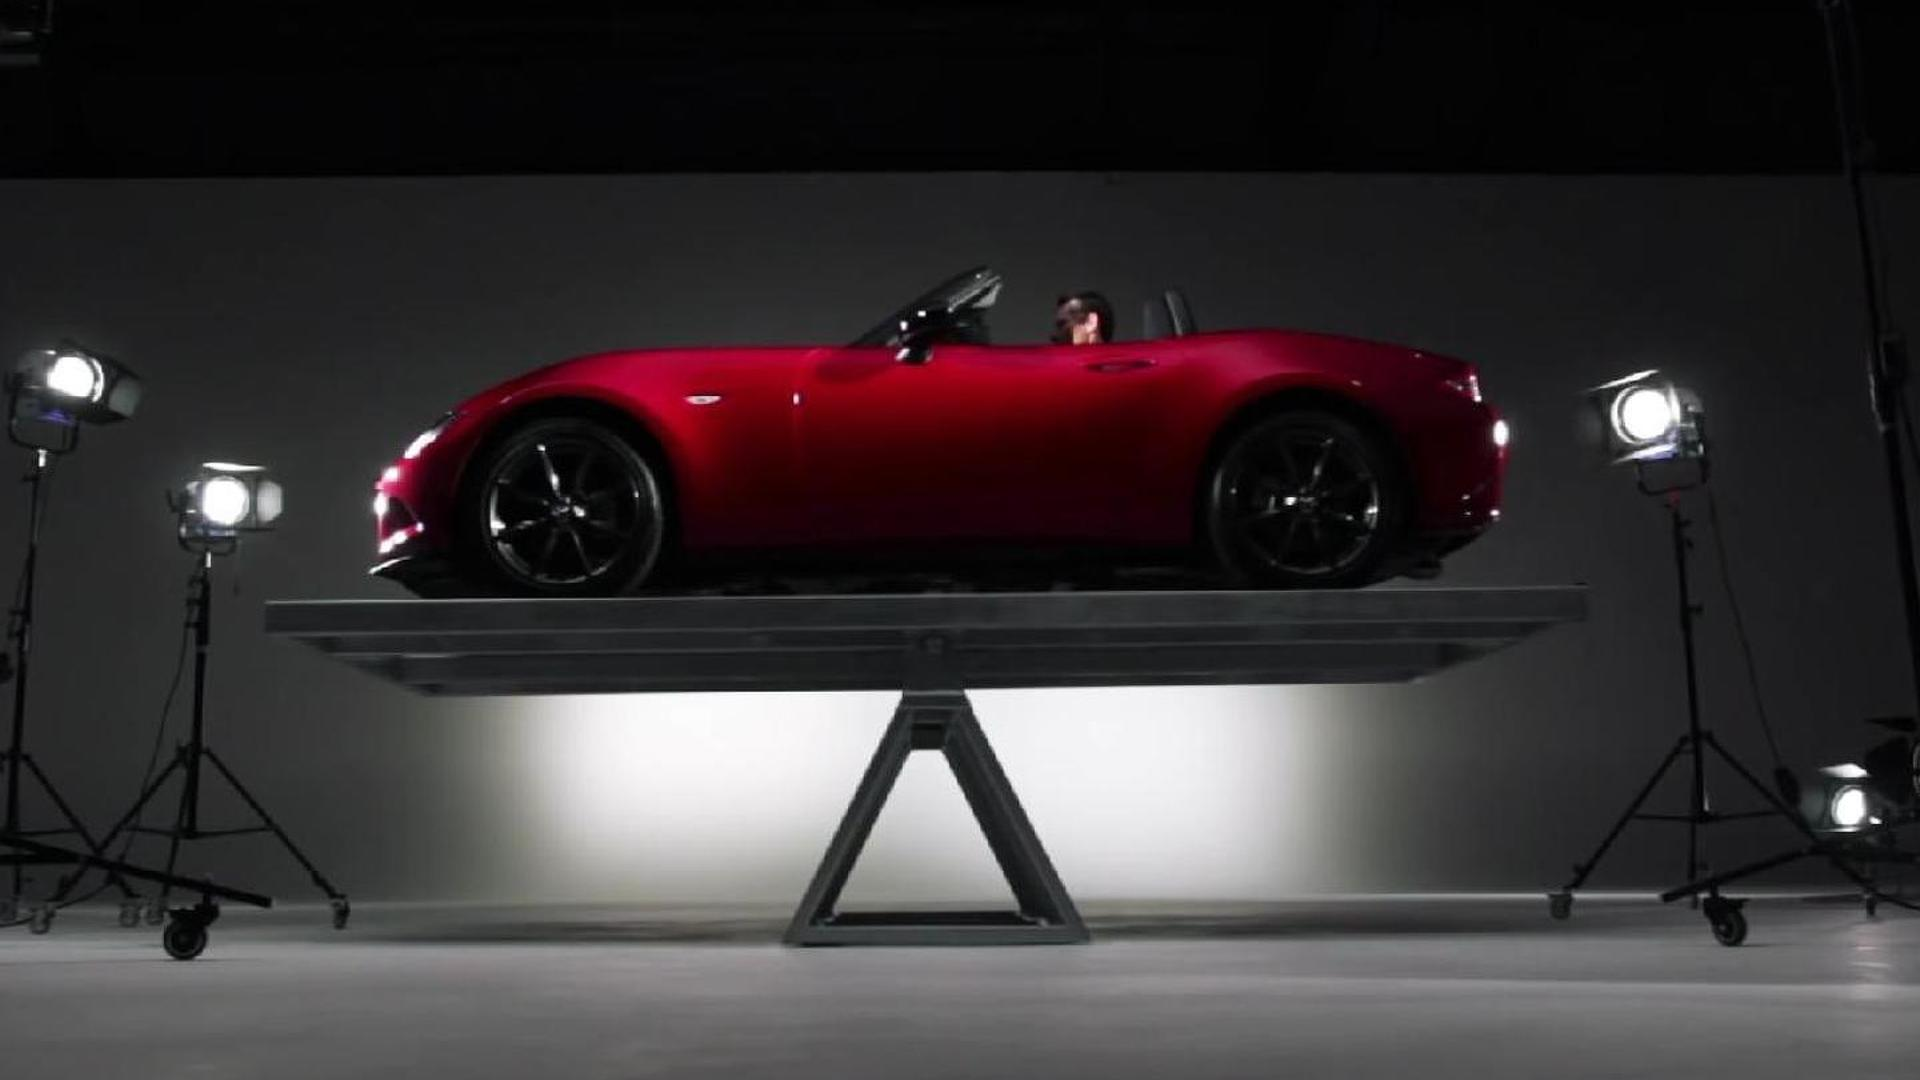 Mazda highlights the MX-5's weight distribution [video]